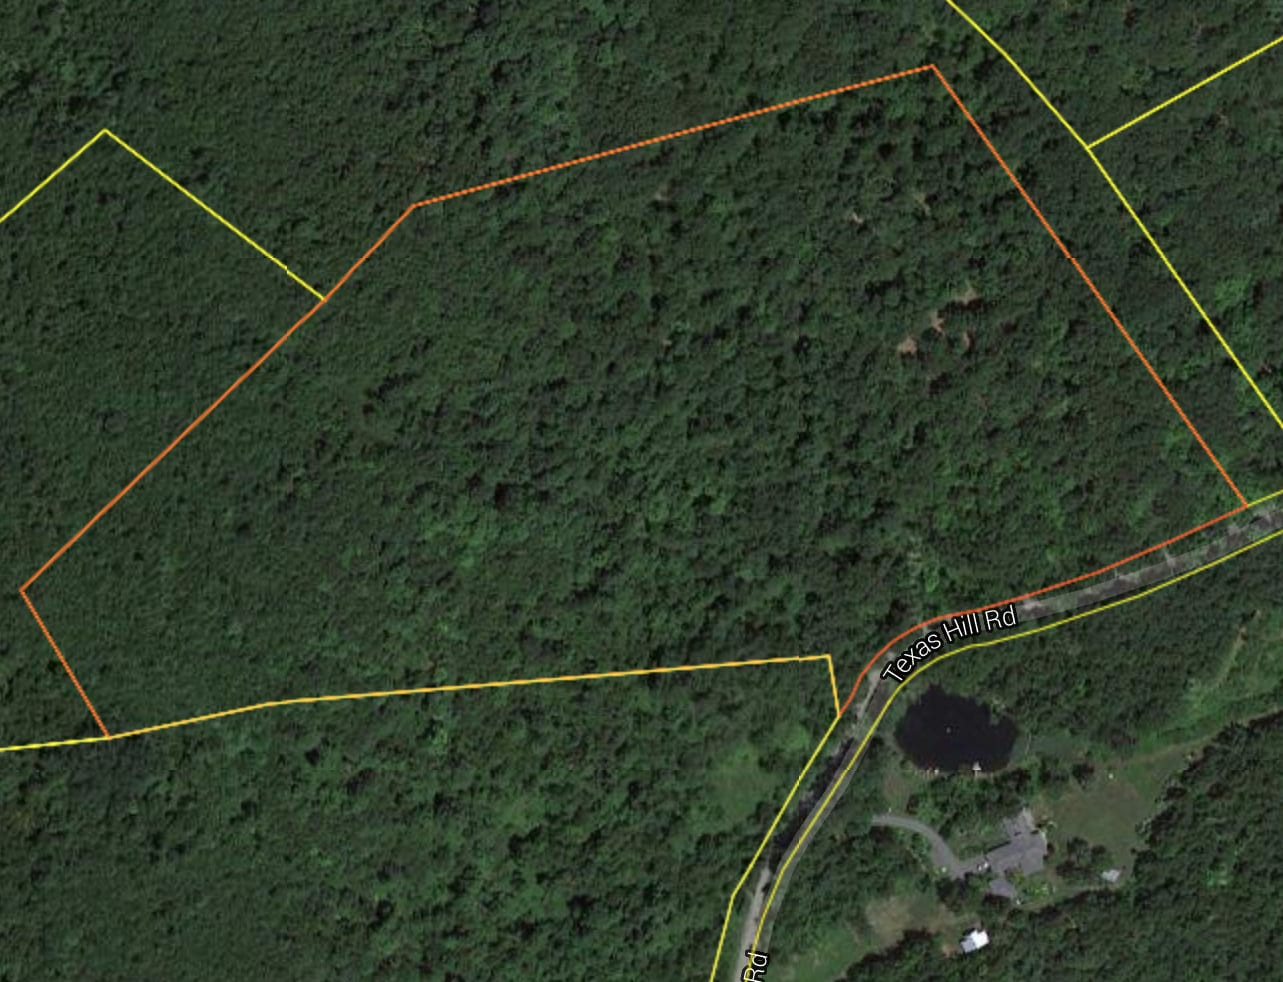 24.84 Acres on a Dirt Road